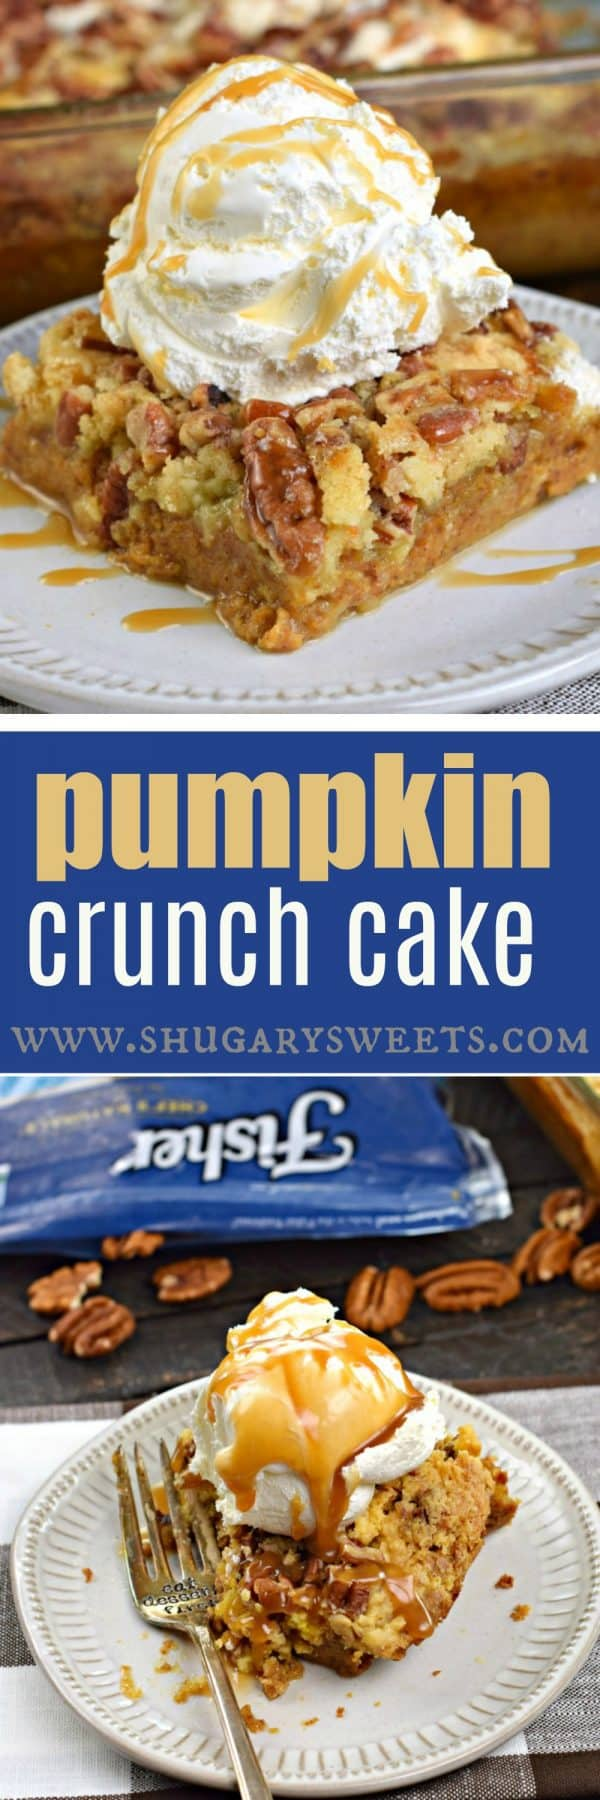 Delicious layers of pumpkin pie and yellow cake combine to make this sweet and salty Pumpkin Crunch Cake recipe @fishernutsbrand #thinkfisher #sponsored